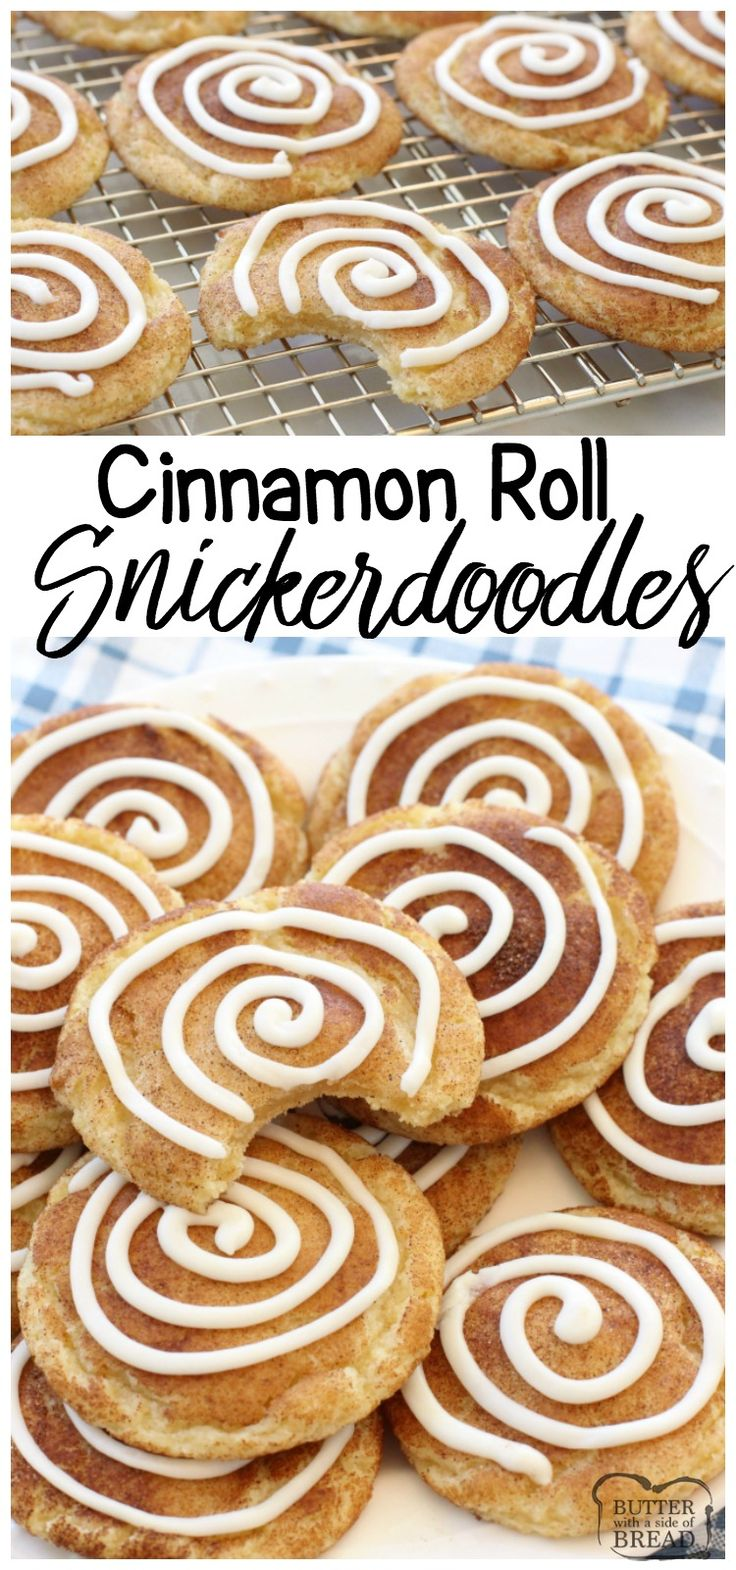 THE BEST Snickerdoodle Cookie recipe plus the fun addition of a sweet vanilla swirl make these Cinnamon Roll Snickerdoodles completely irresistible! Easy cookie recipe from Butter With A Side of Bread via @ButterGirls